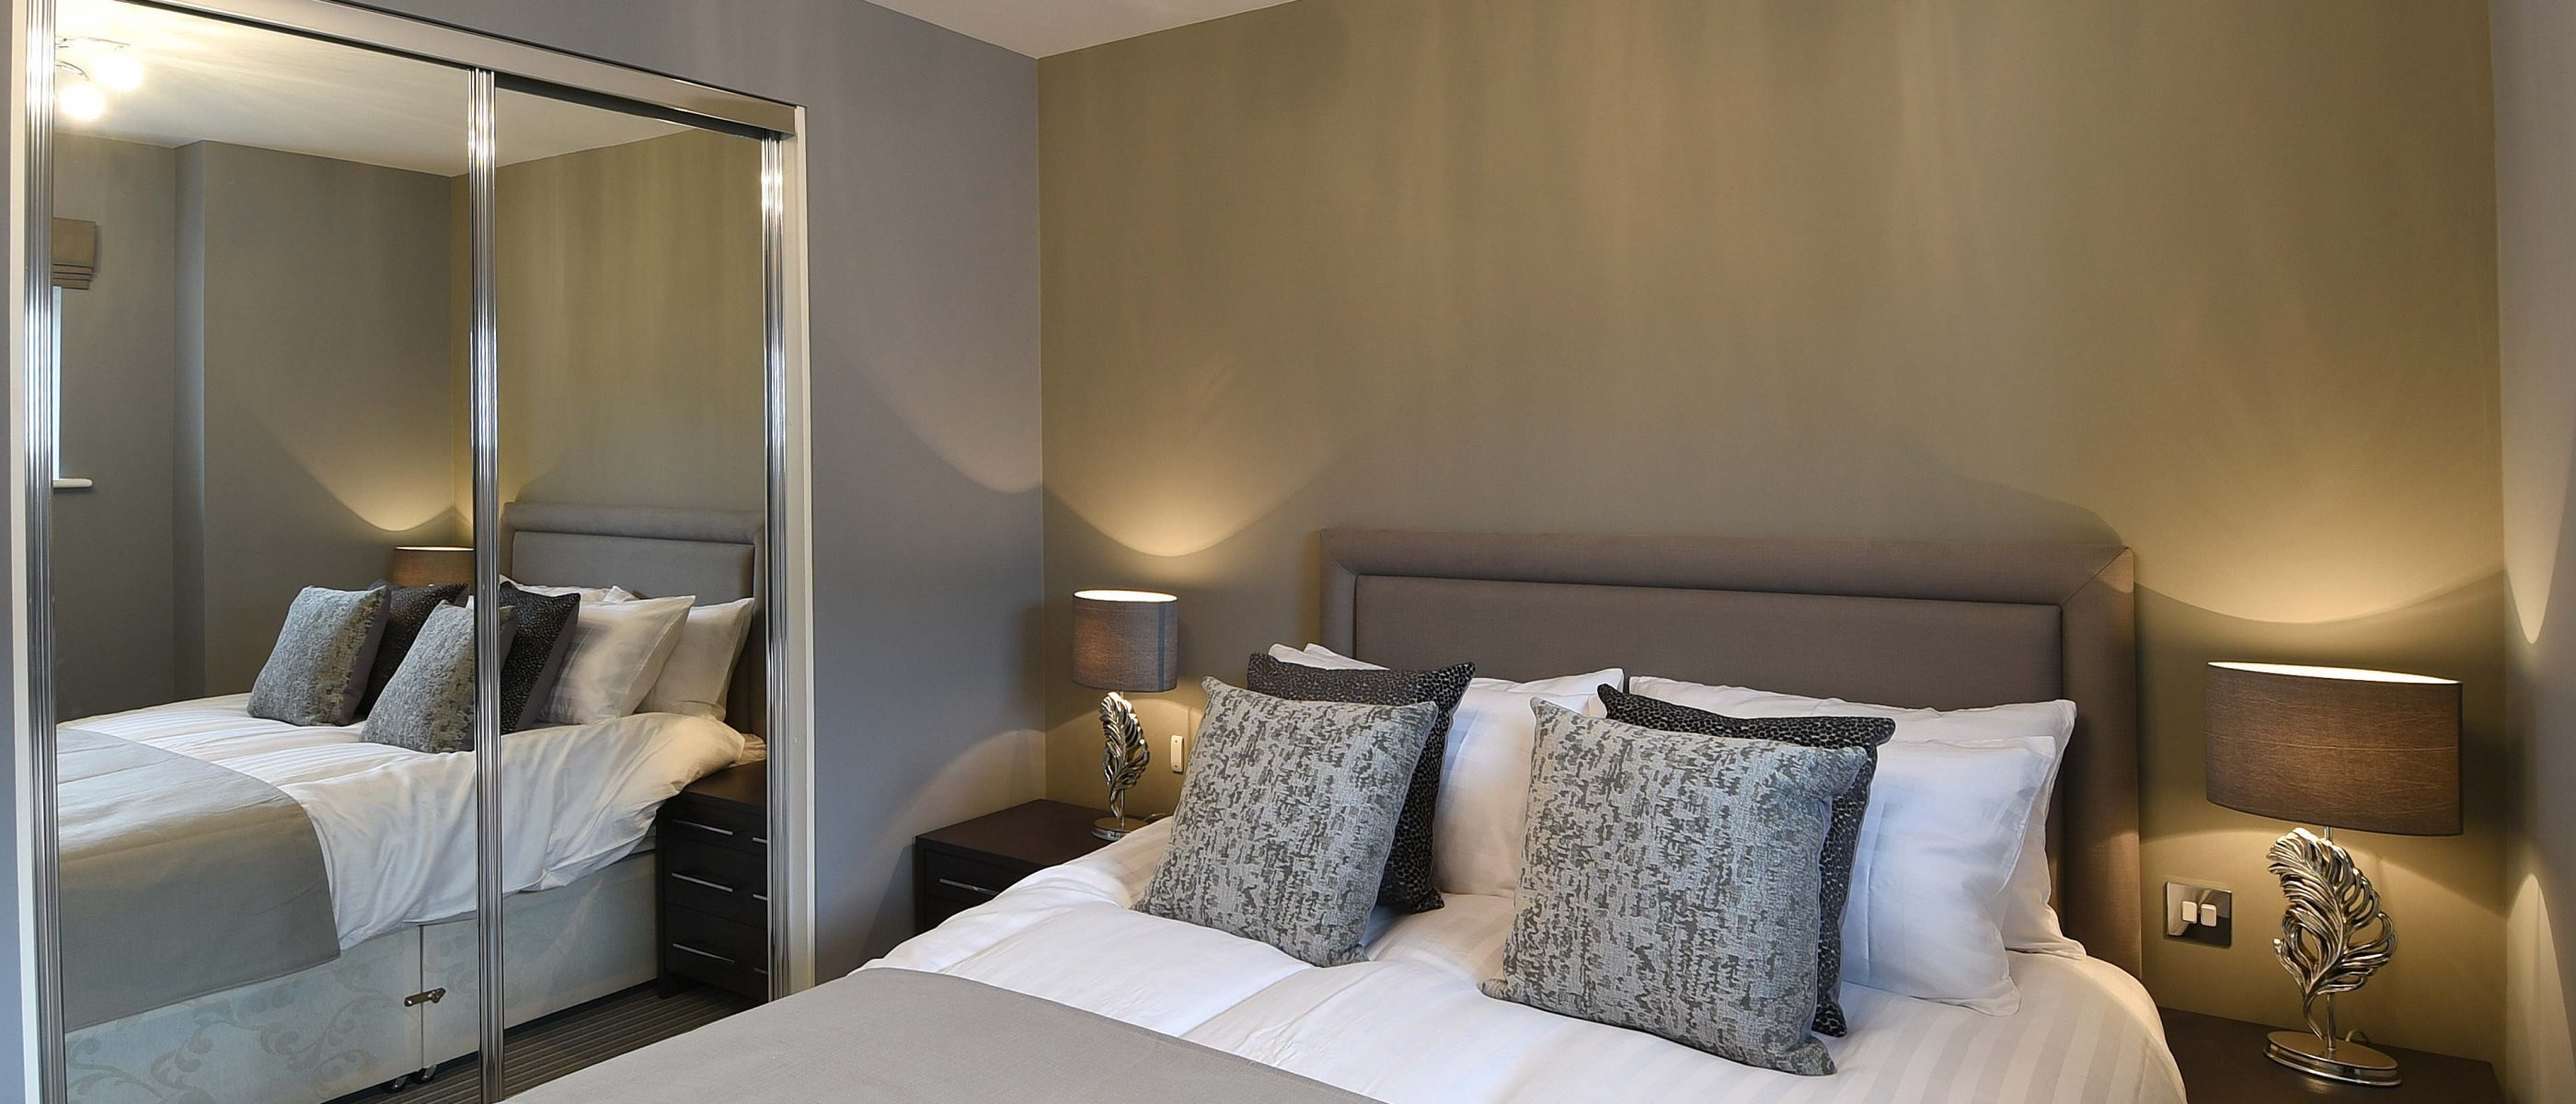 The bedroom in the Morland Suite: a one bedroom luxury serviced apartment at The Old Gaol, by the River Thames in Abingdon, near Oxford. Ideal accommodation for corporate or holiday short lets